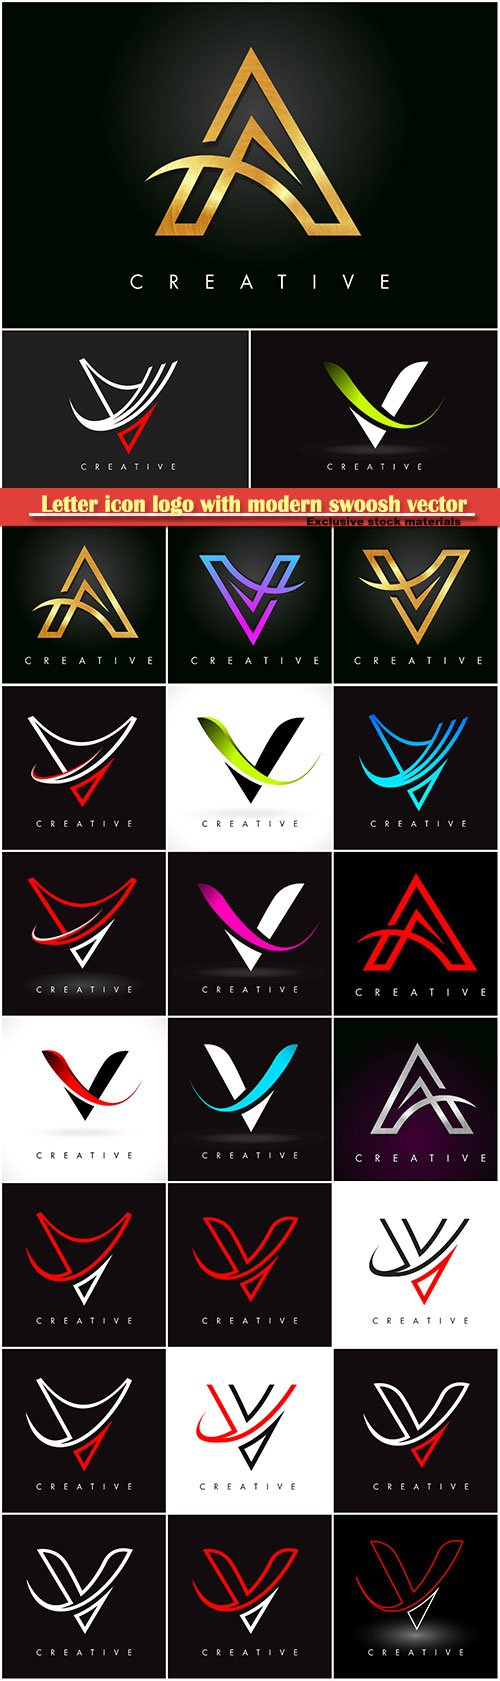 Letter icon logo with modern swoosh vector illustration